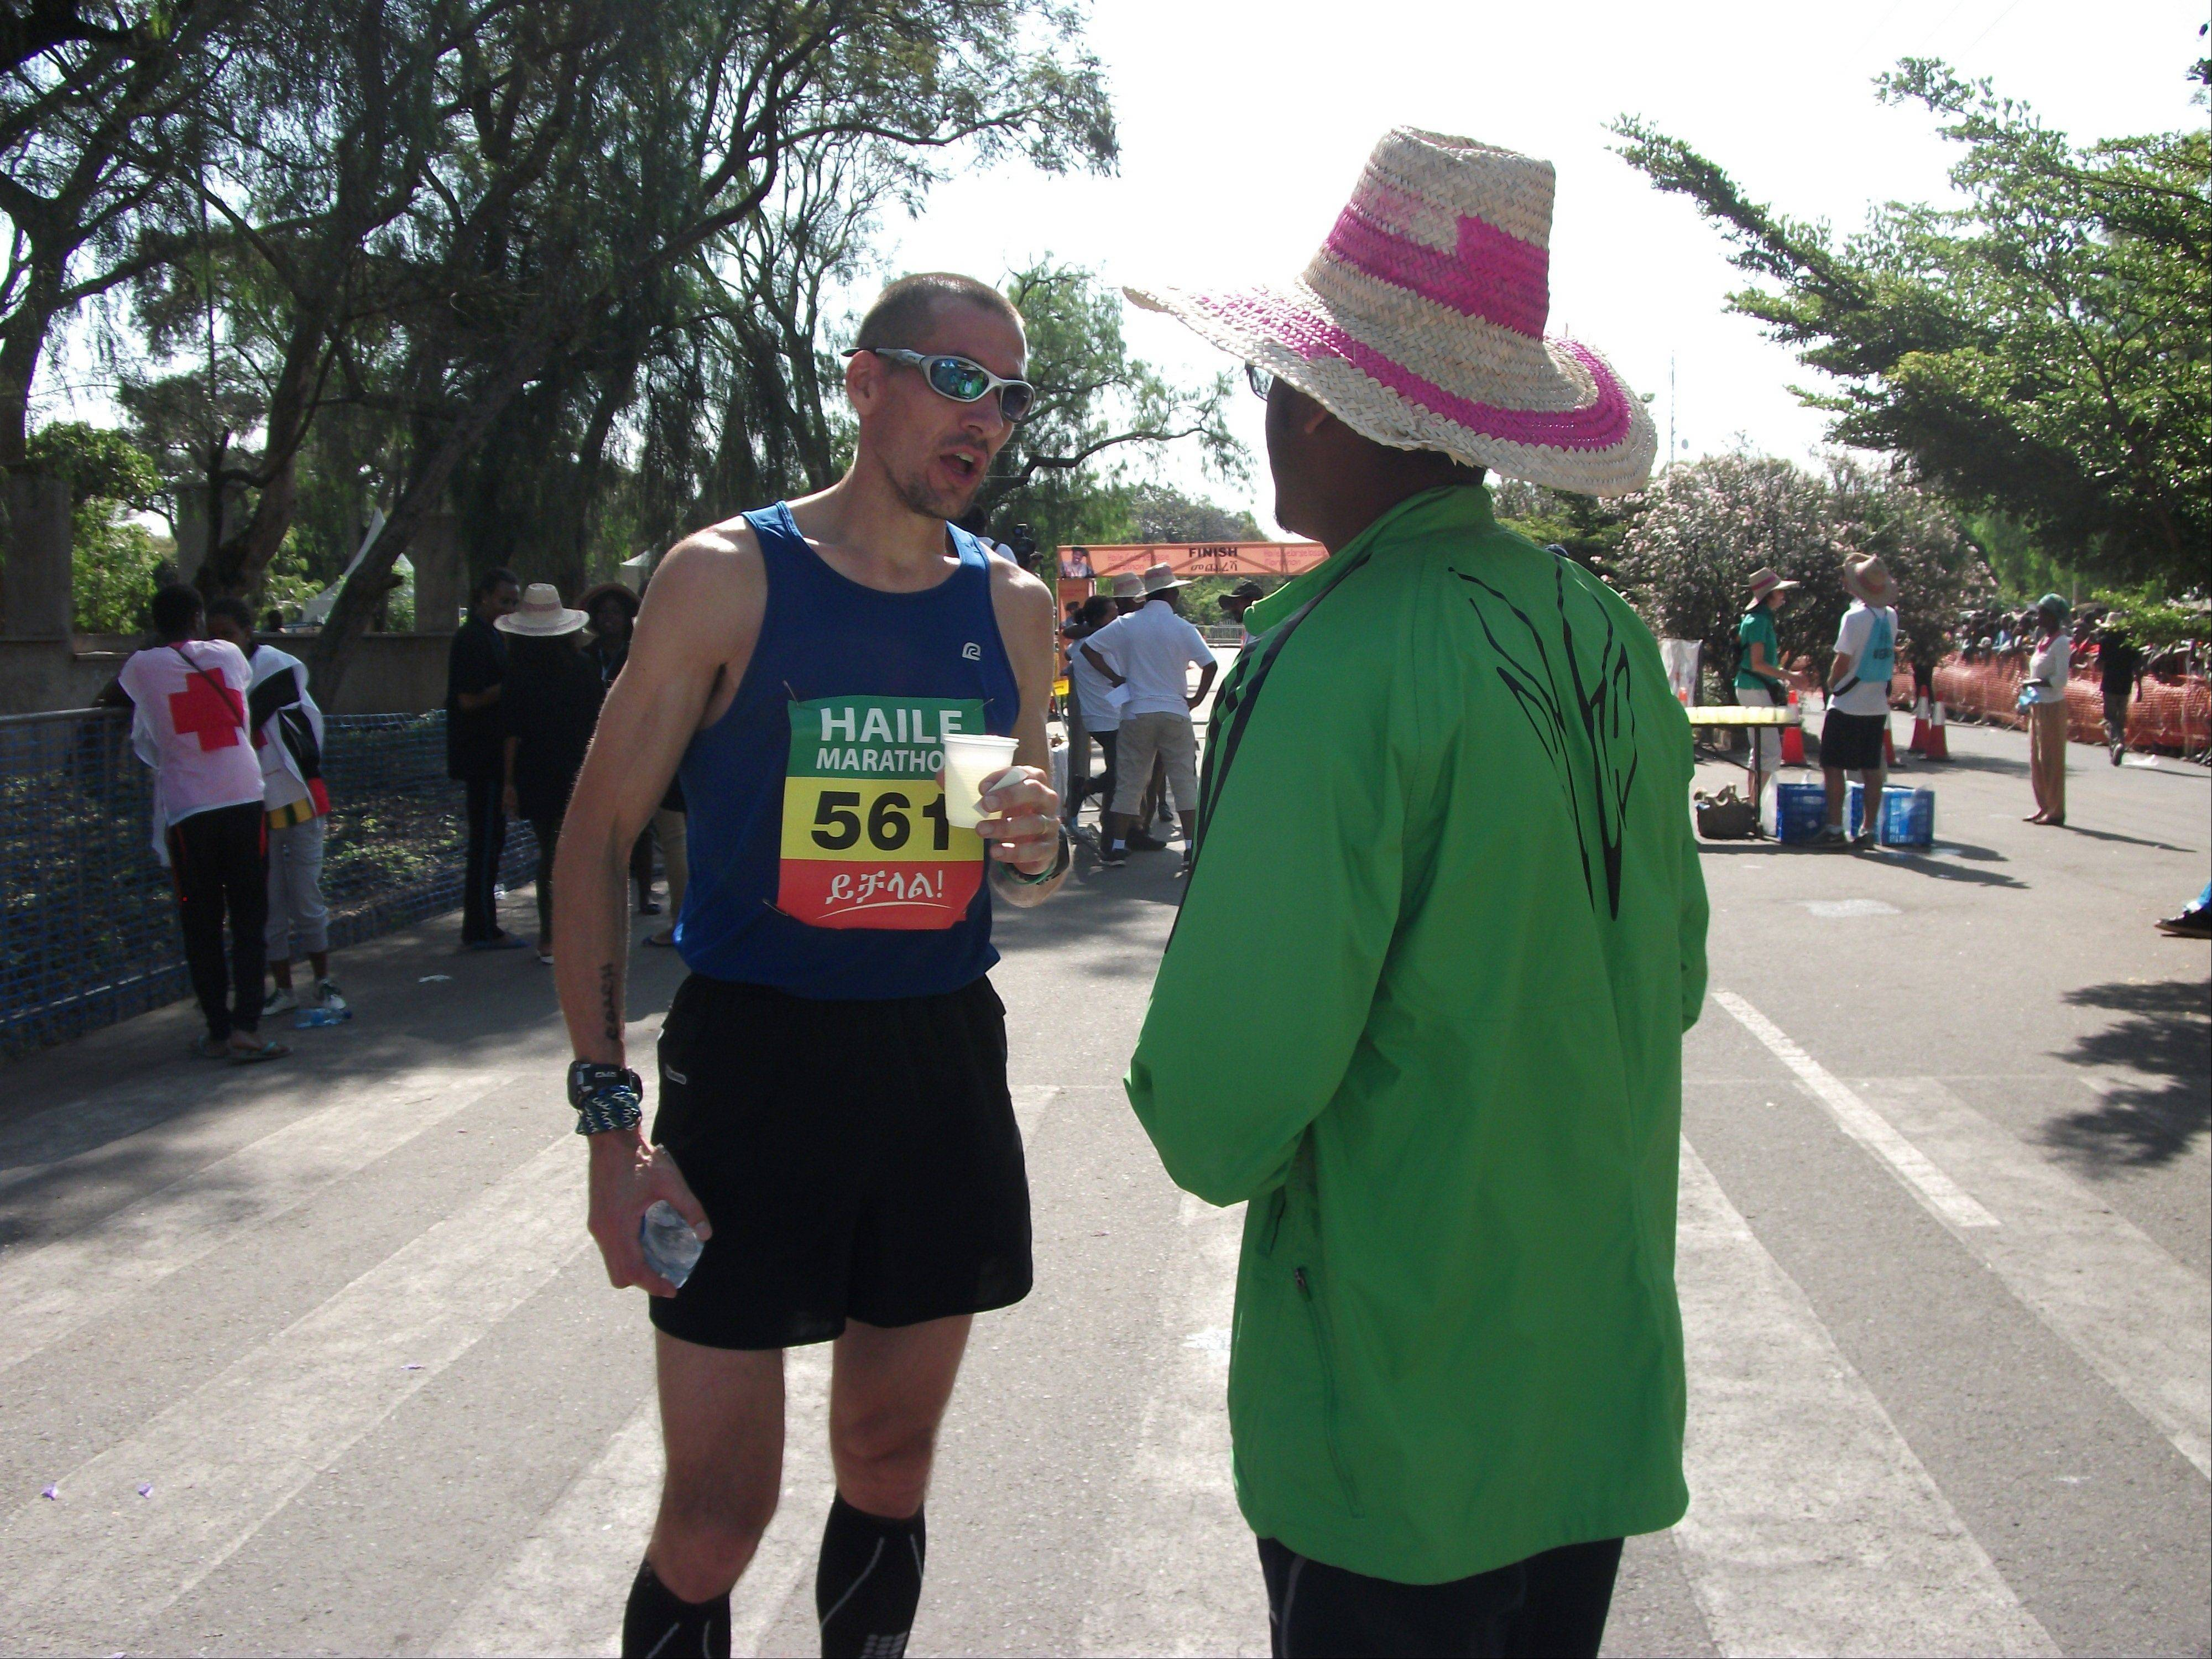 Jason Dolan, of Inverness, talks with a local man after winning the foreign runners category of the first 2013 Haile Gebrselassie Marathon in Hawassa, southern Ethiopia.